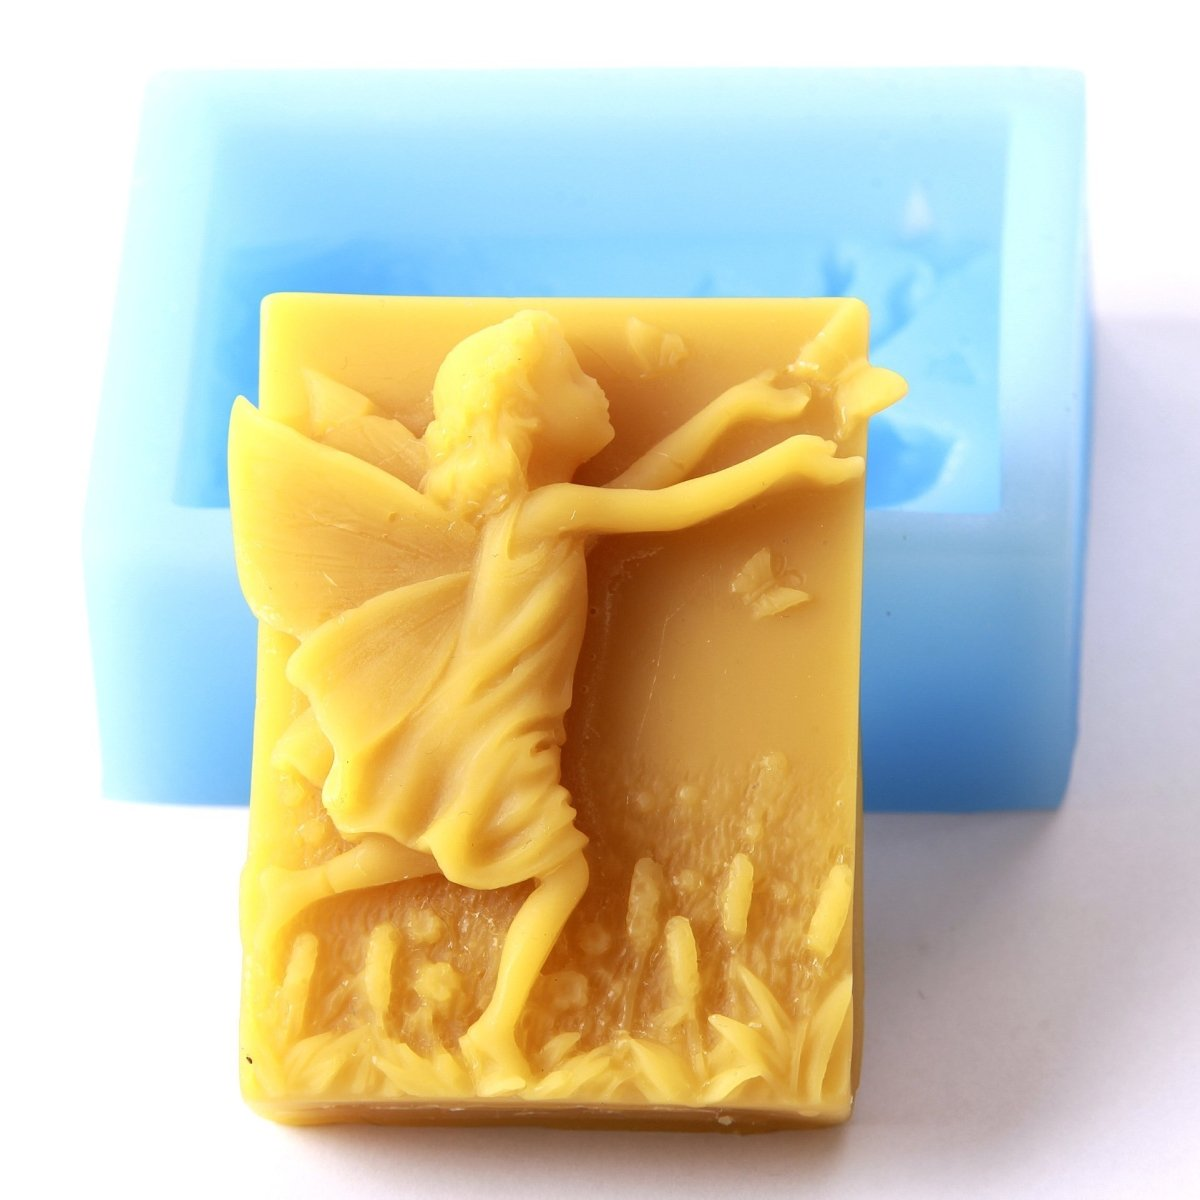 Fairy and Butterfly Rectangle Silicone Soap Mould R0720 - Mystic Moments UK